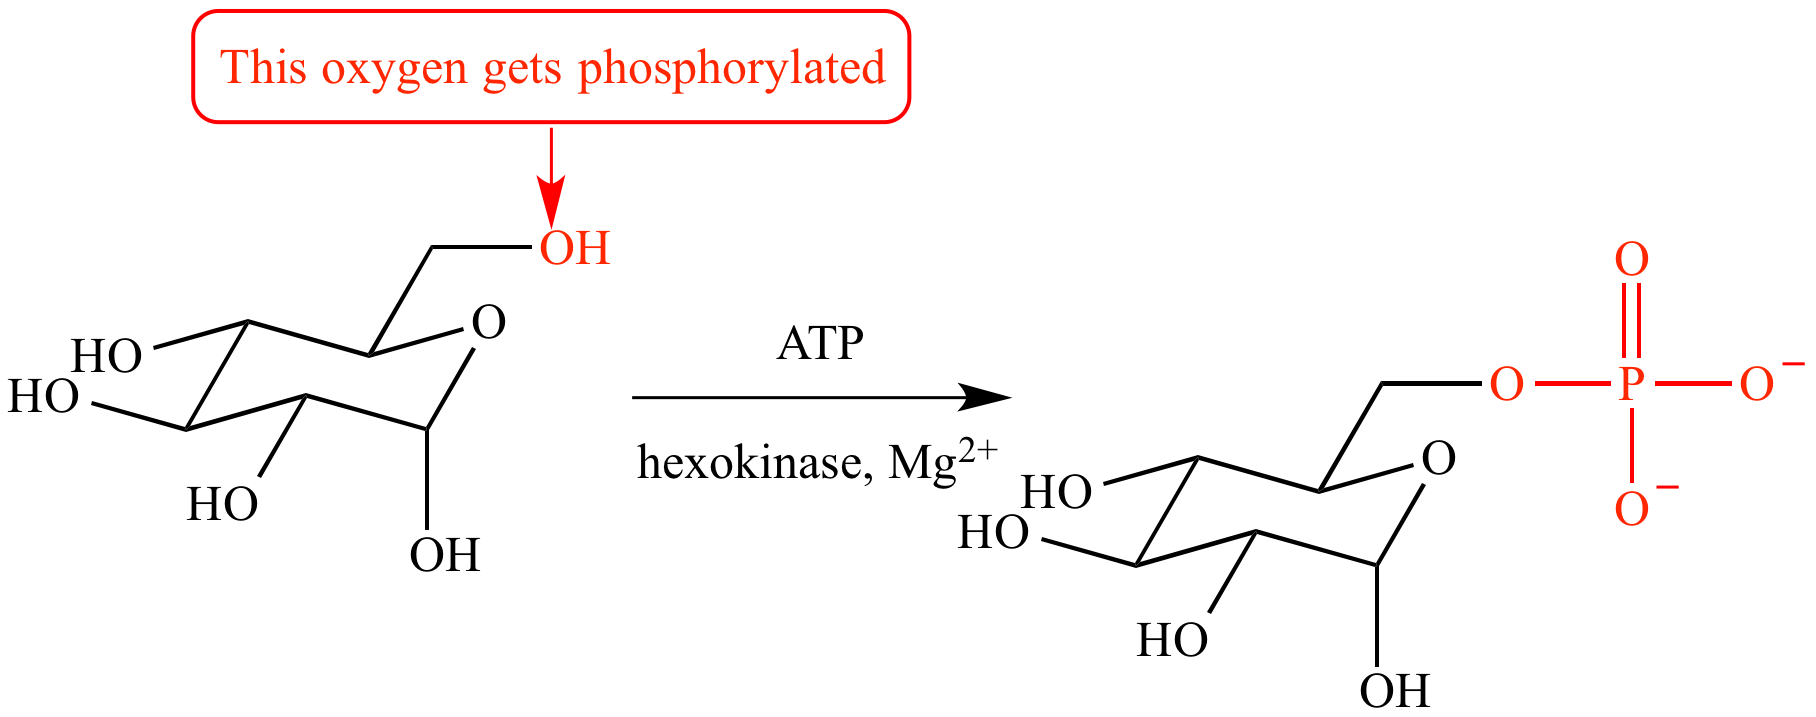 In the first step of glycolysis, the carbon-6 hydroxyl group of glucose is  converted from an alcohol to a phosphate ester (i.e., it is phosphorylated).